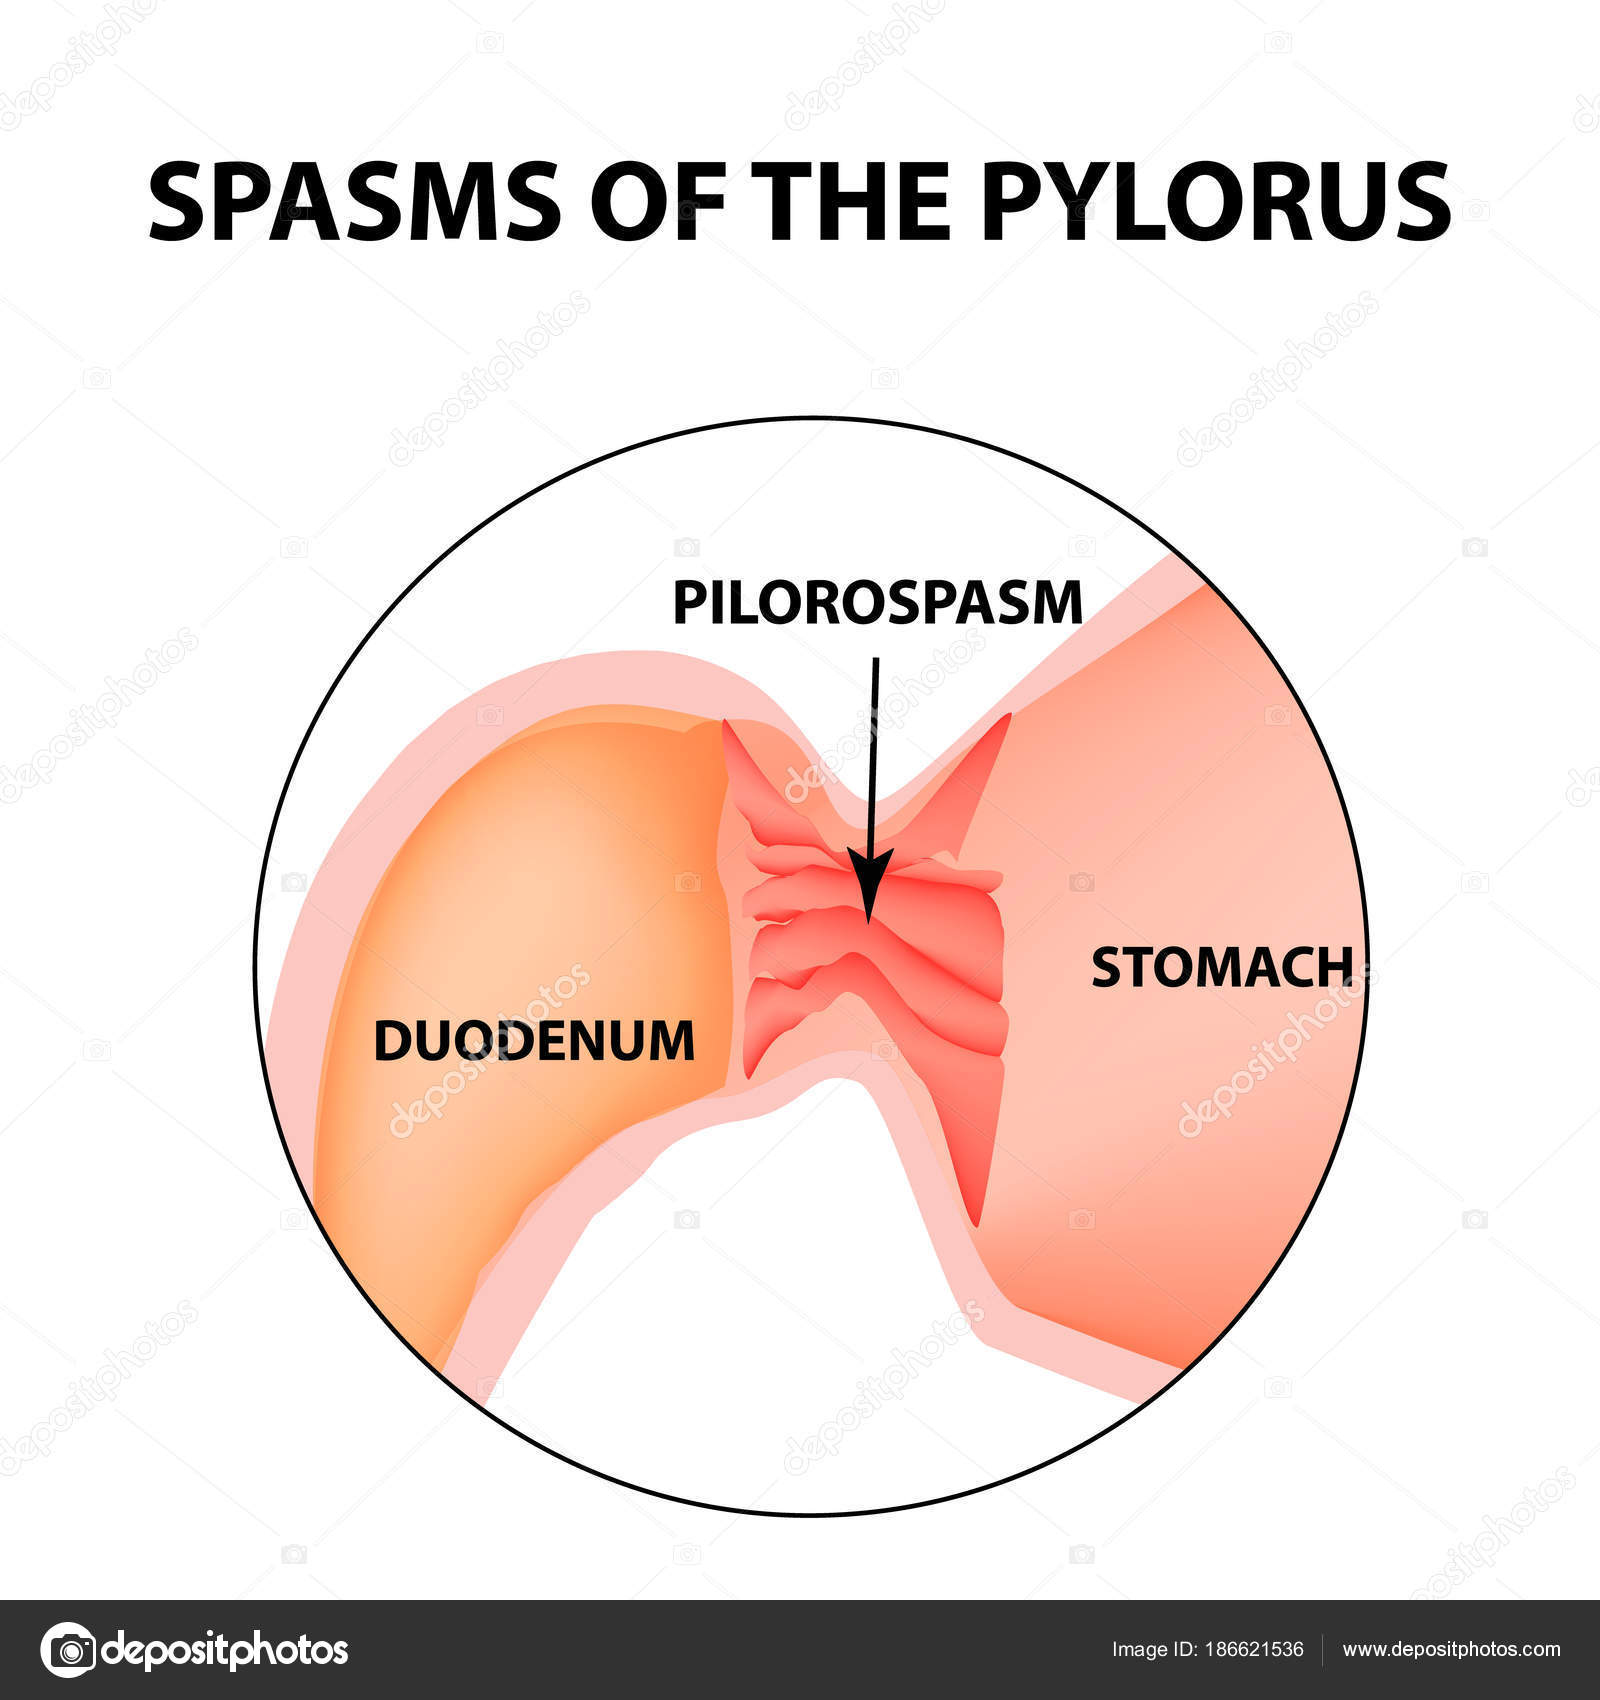 Spasms Of The Pylorus Pylorospasm Spastic And Atonic Pyloric